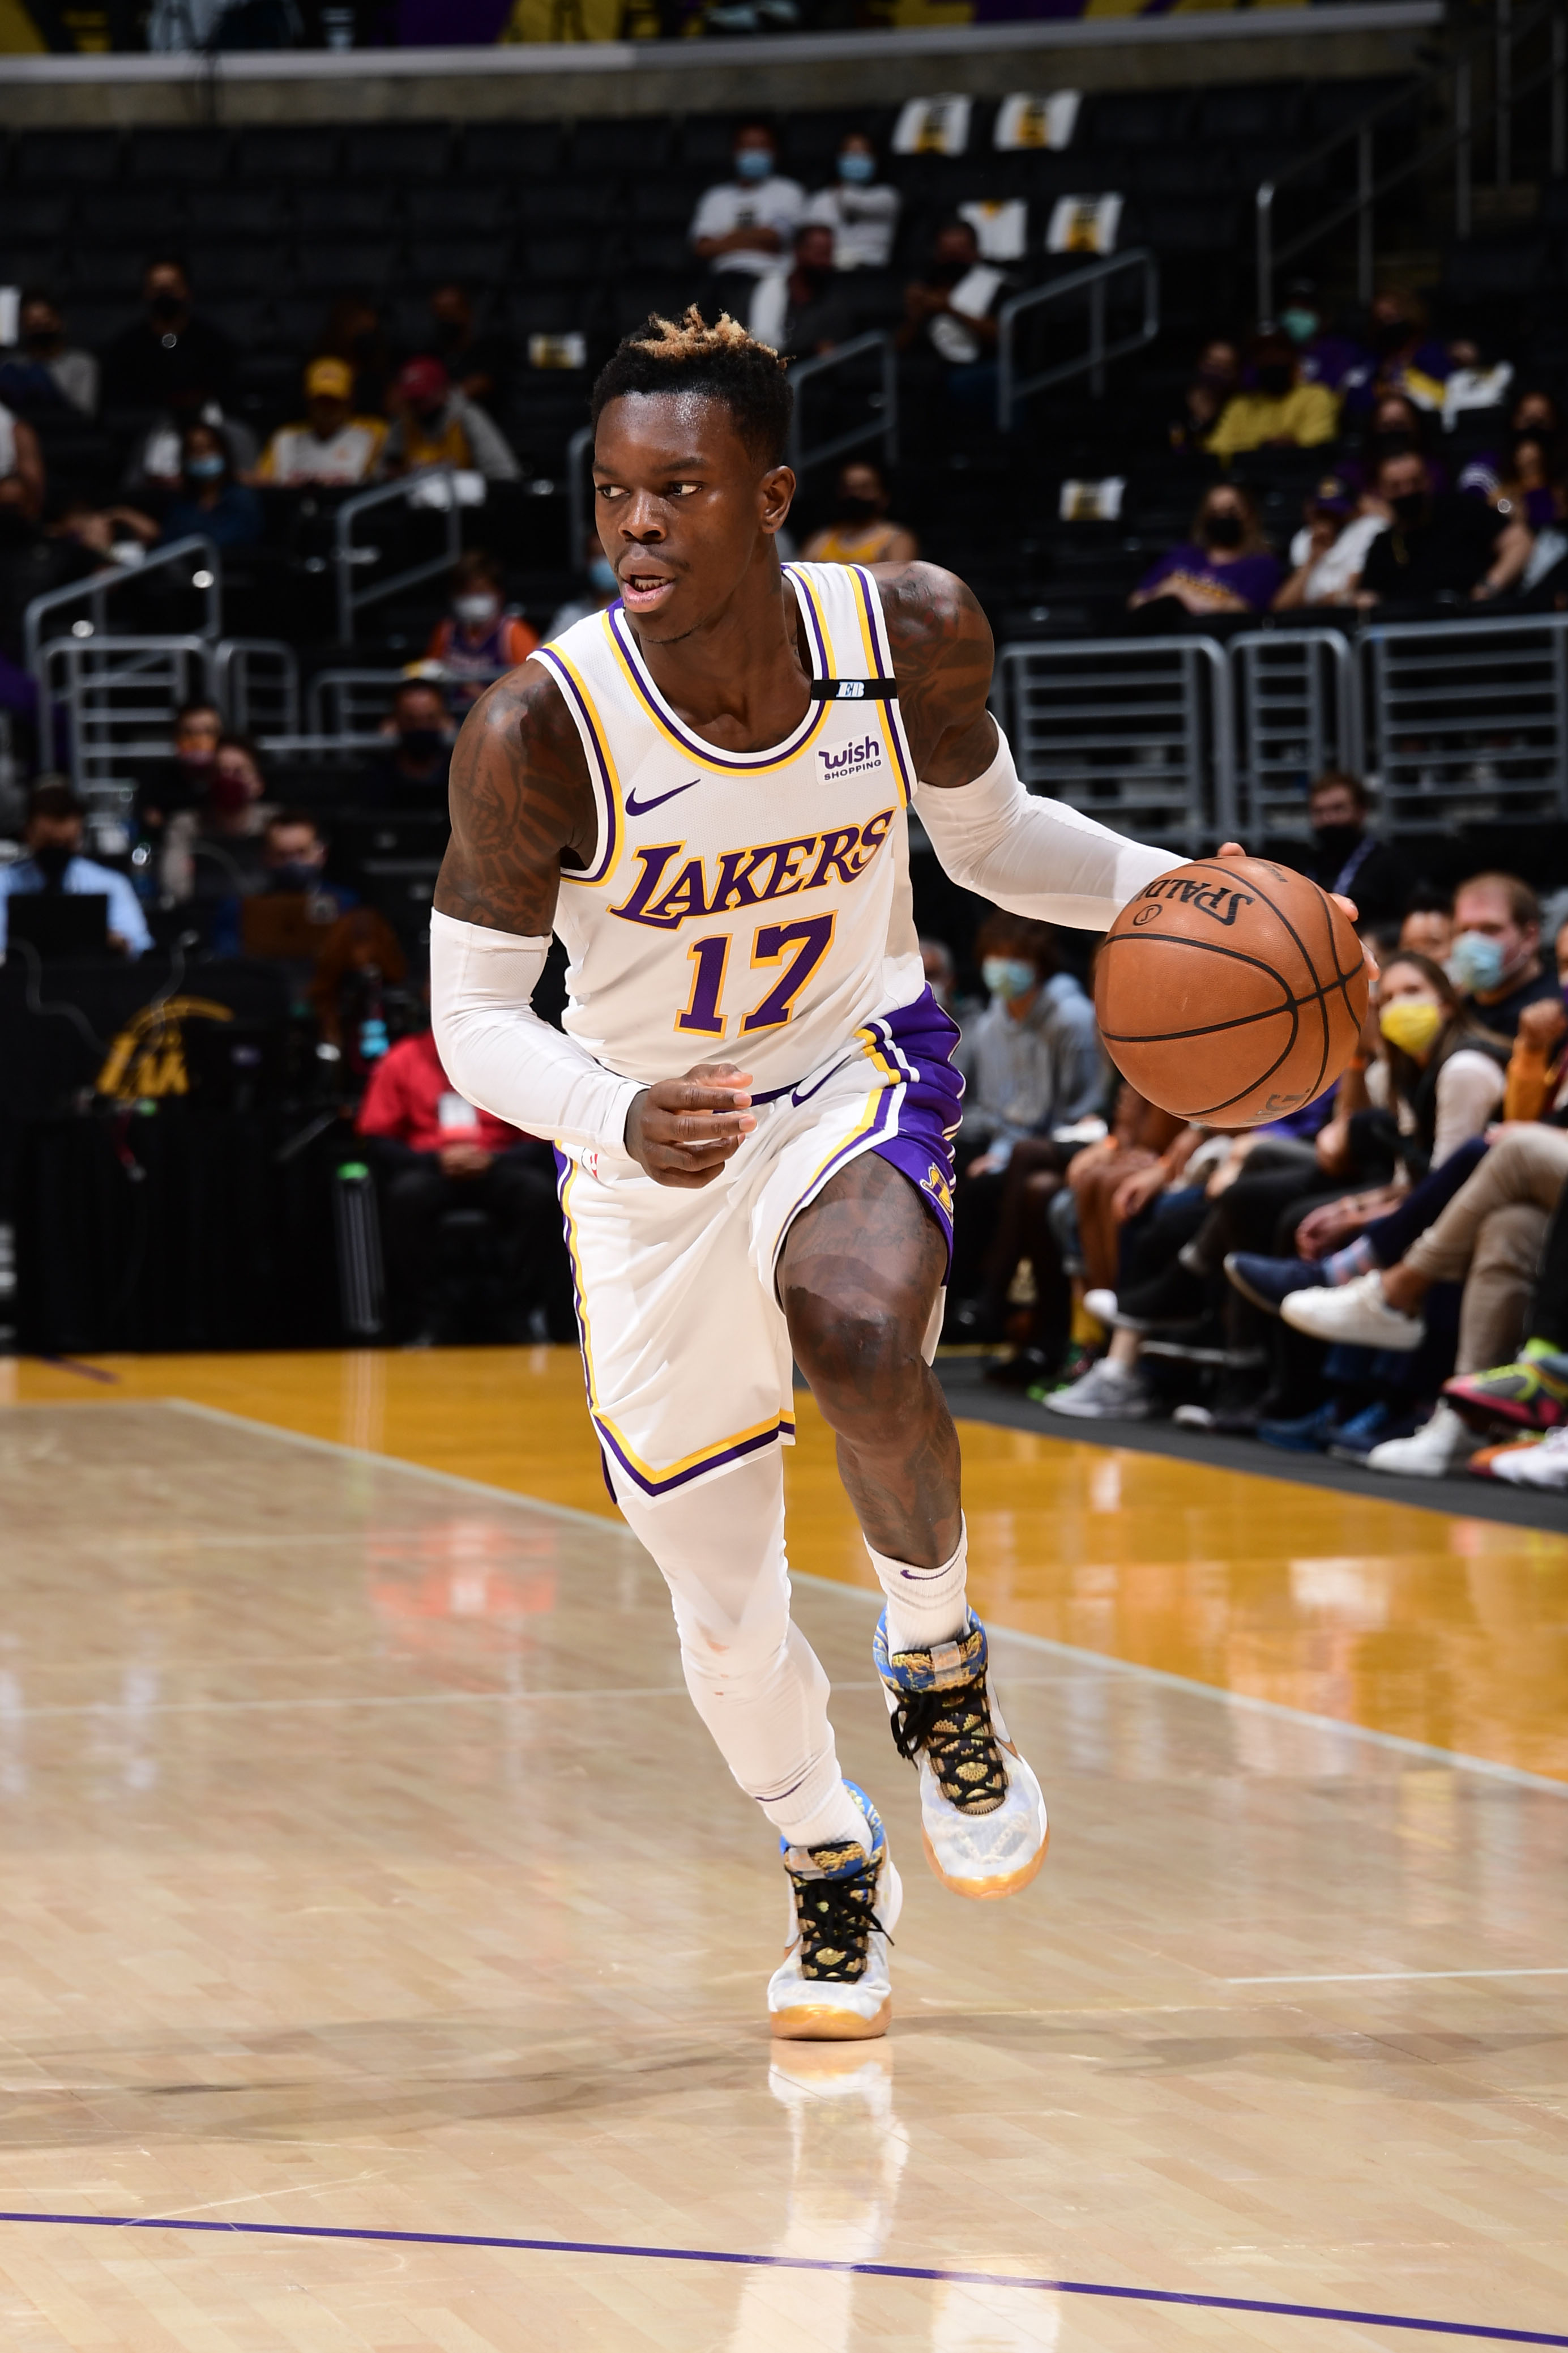 Dennis Schroder #17 of the Los Angeles Lakers dribbles the ball during the game against the Phoenix Suns during Round 1, Game 4 of the 2021 NBA Playoffs on May 30, 2021 at STAPLES Center in Los Angeles, California.